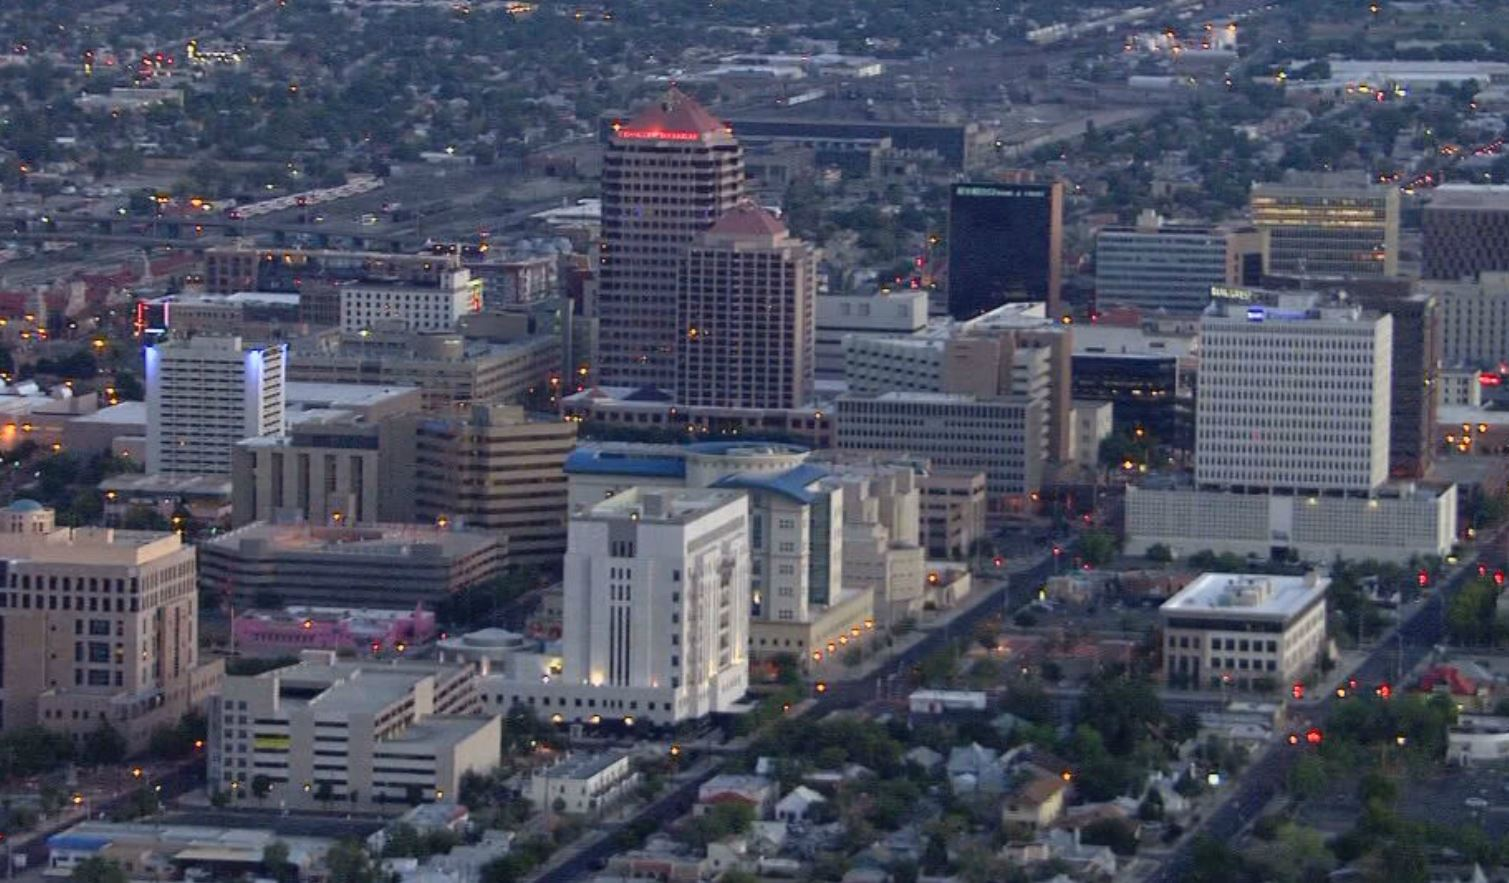 Study: Nob Hill is best place for millennials to live | KRQE